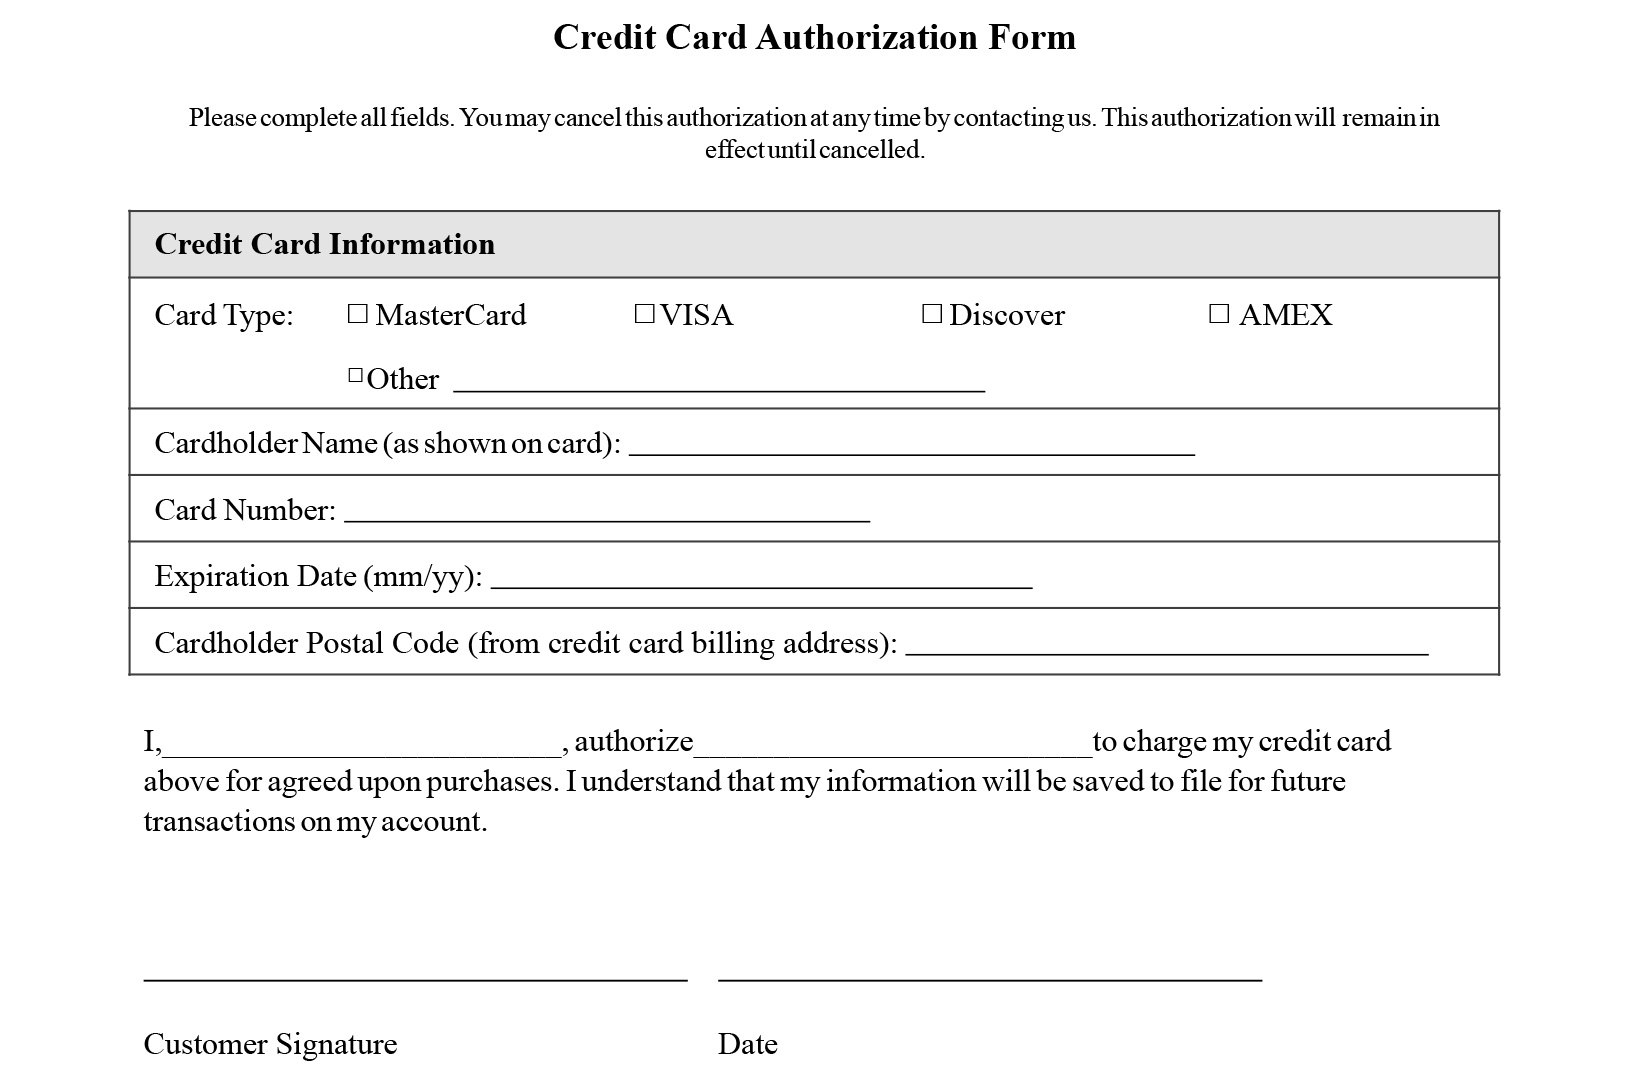 Credit Card Authorization Form Templates Download Regarding Hotel Credit Card Authorization Form Template